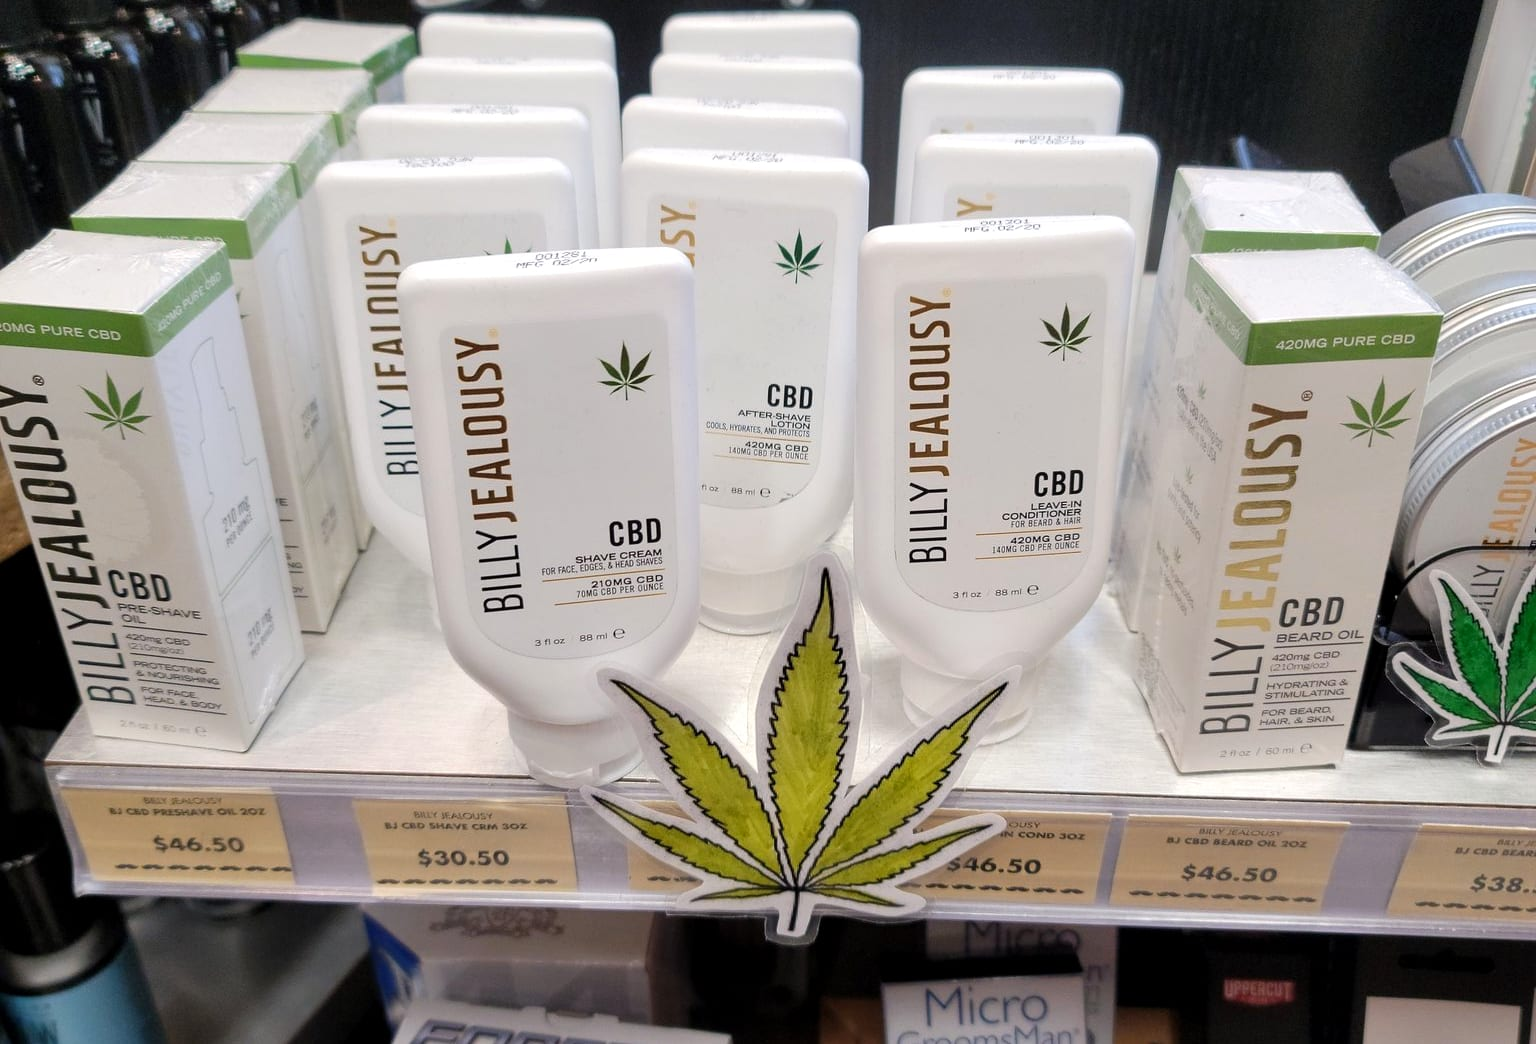 Illict CBD shampoo in plain view - what's it to you?